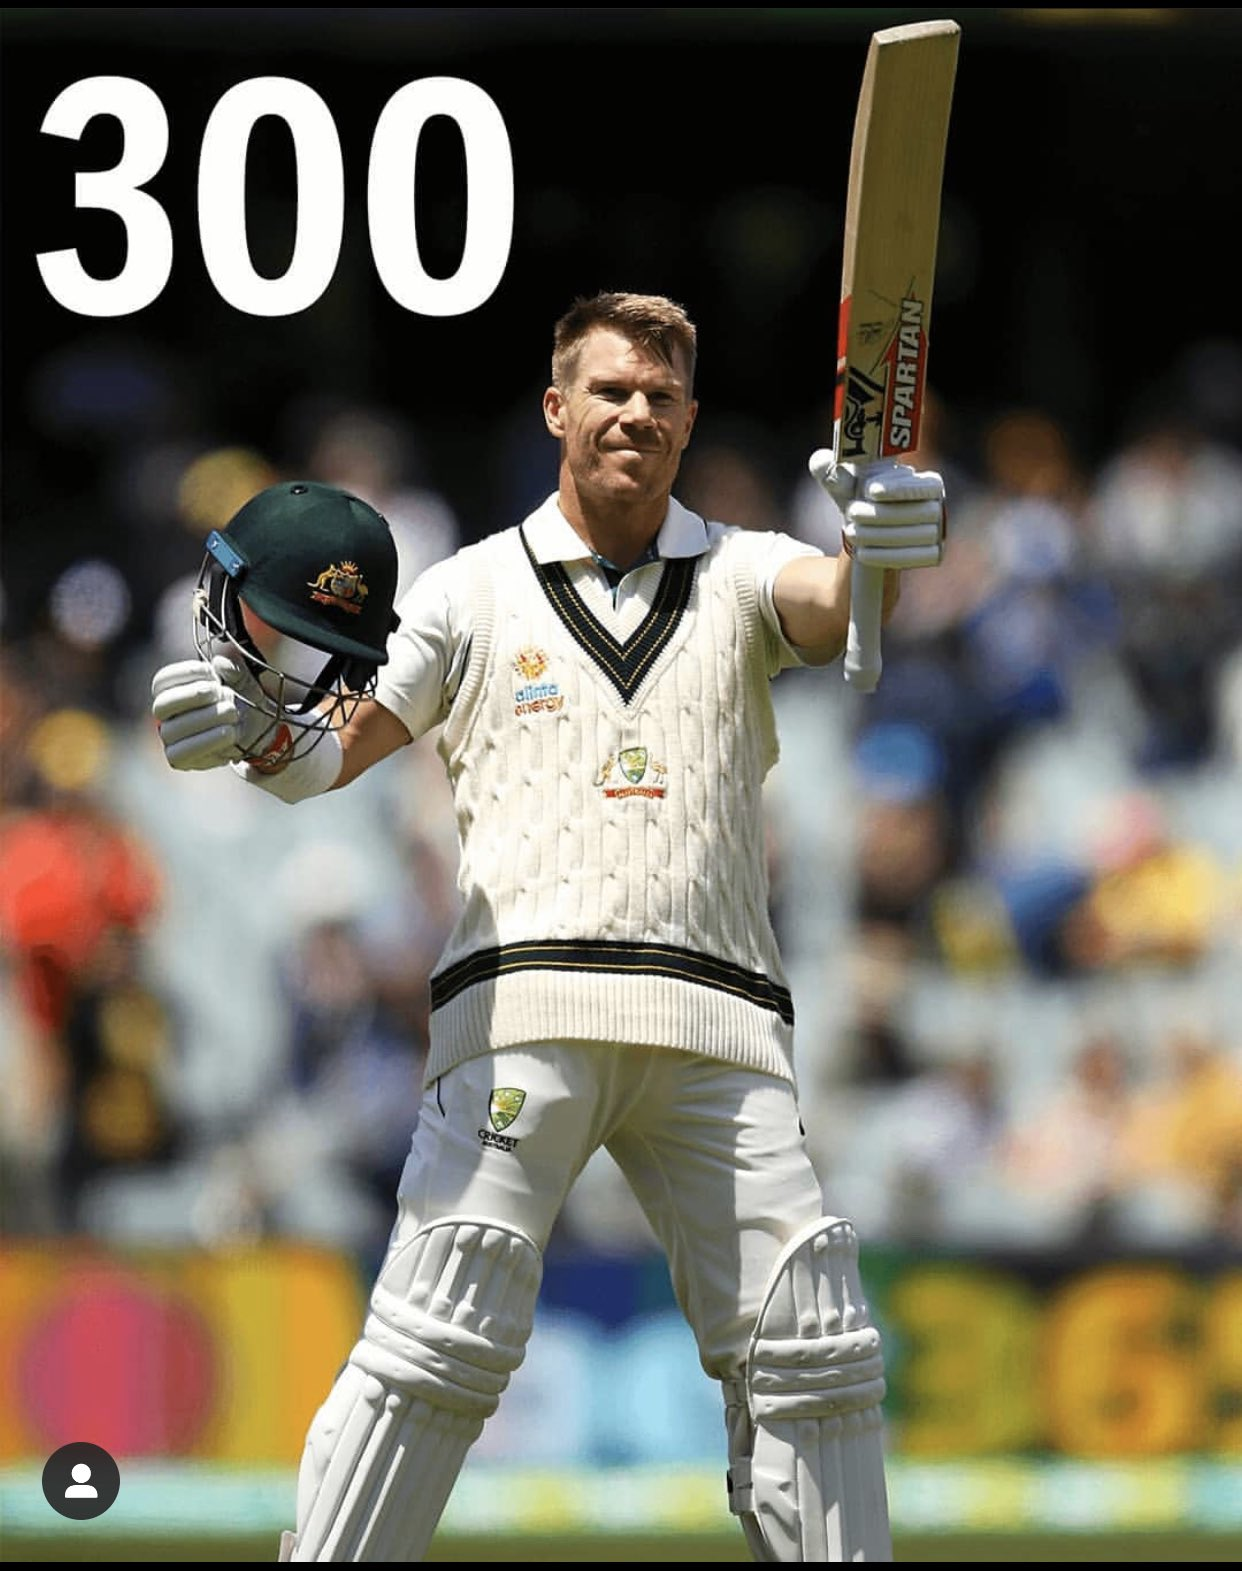 David Warner 335 runs not out